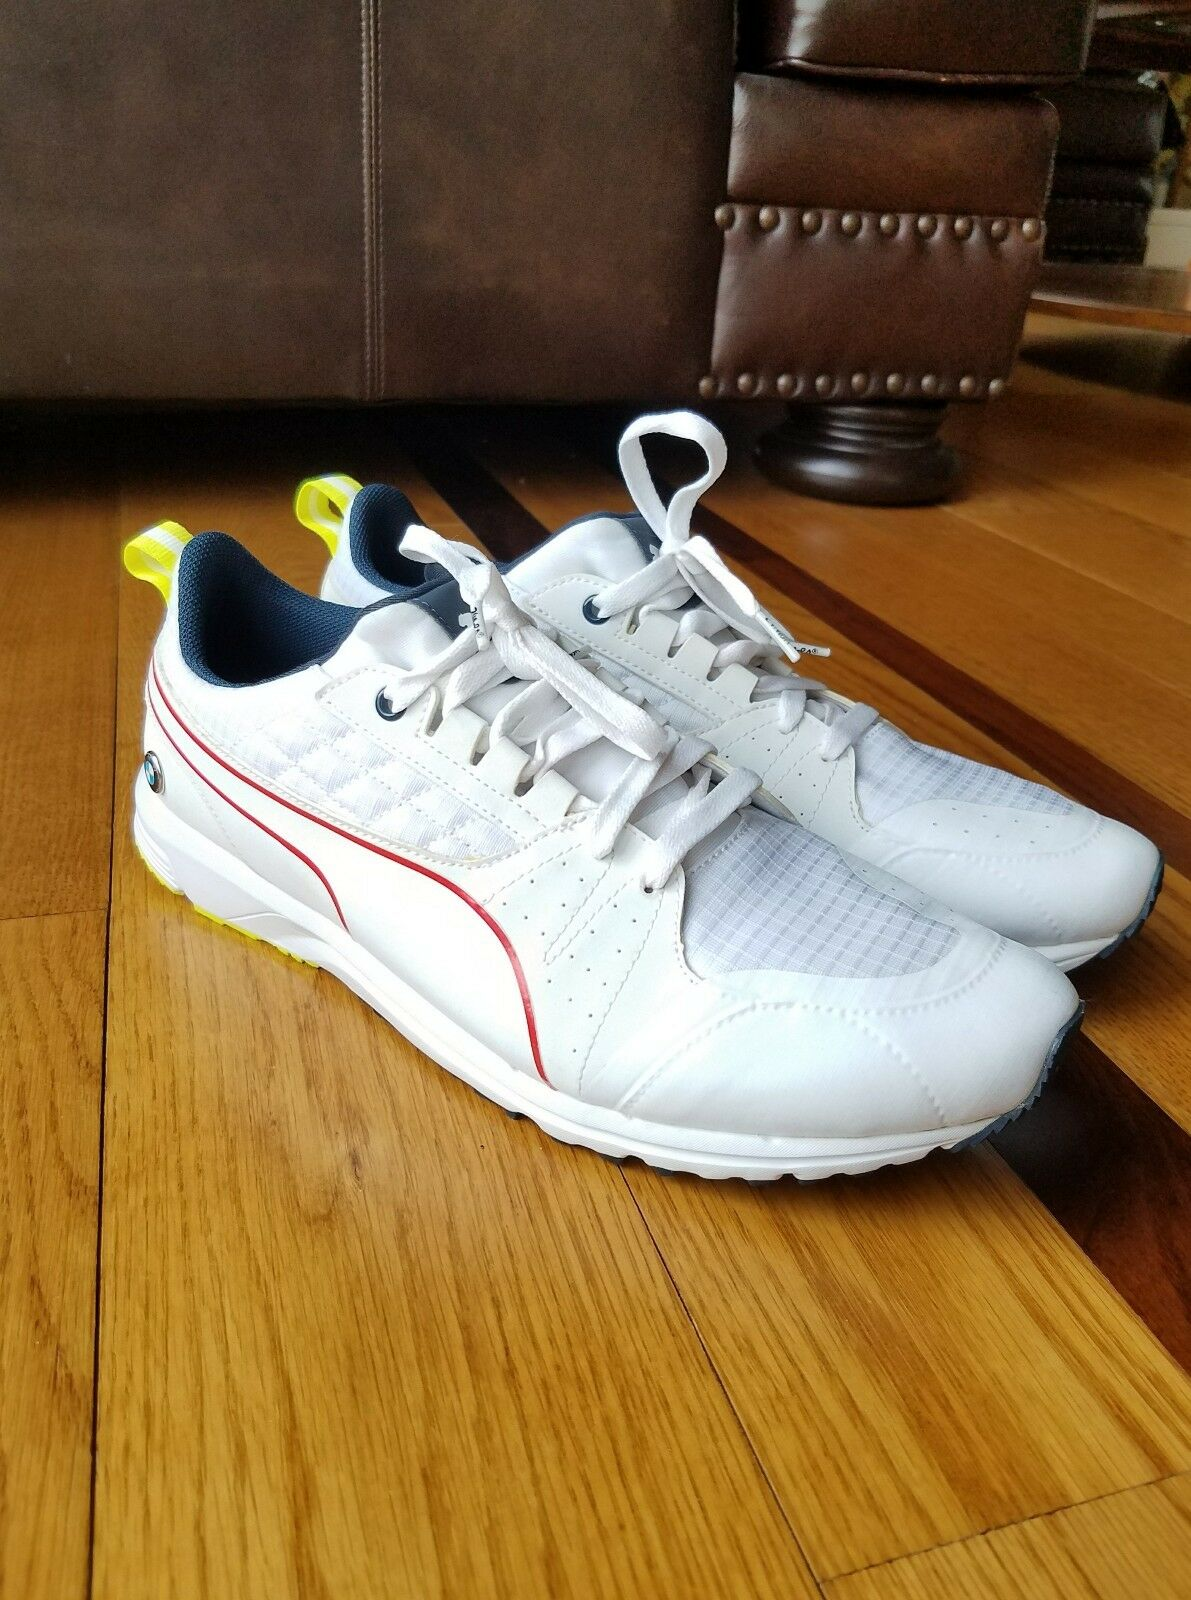 NEW PUMA Men's BMW Motorsport White Sneaker shoes Powered by M Size 13 Eur 47